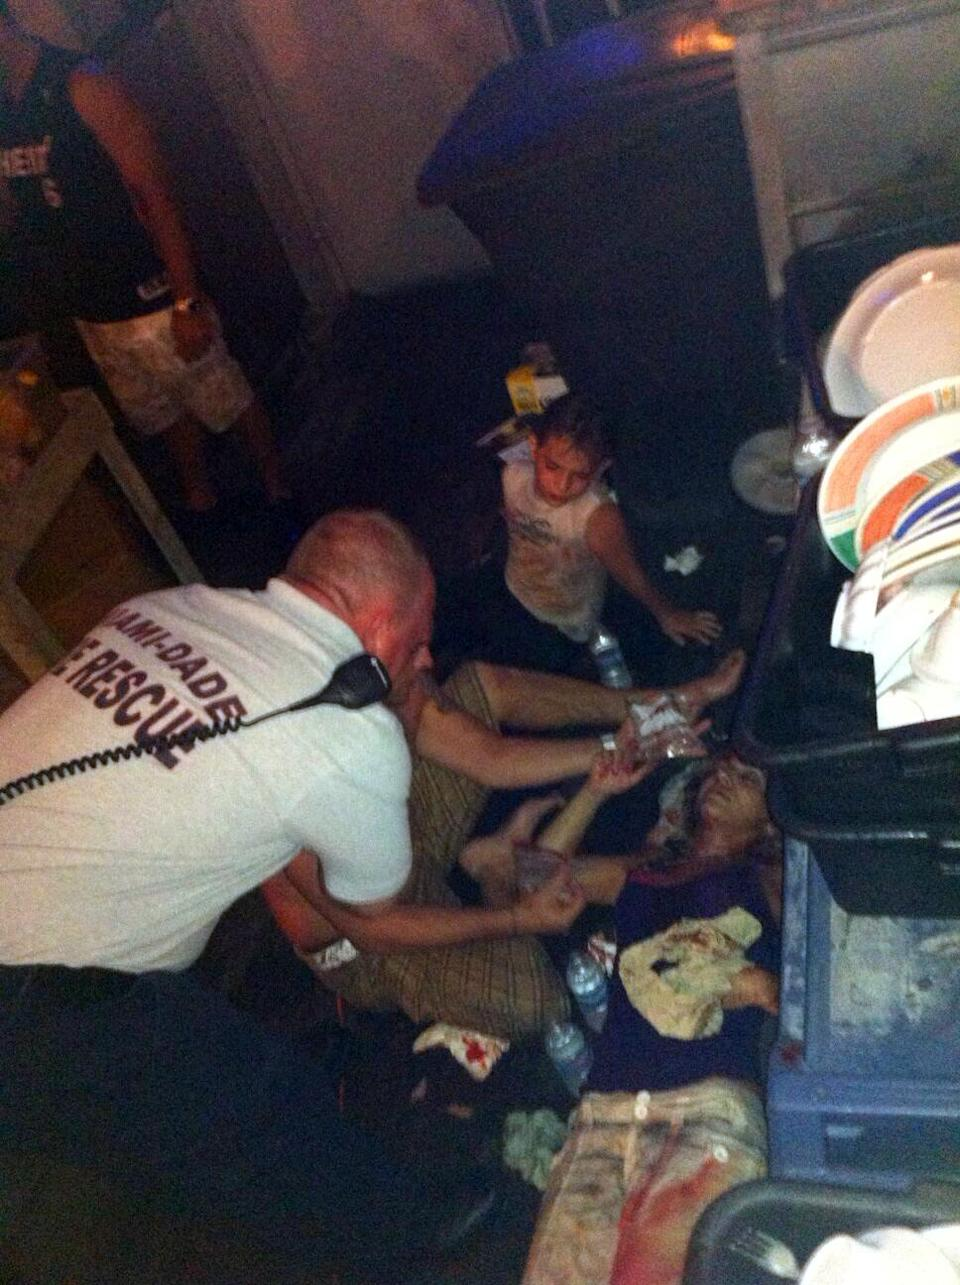 In this photo provided by WSVN-TV, victims of a deck collapse  at Shuckers Bar & Grill in Miami are treated by Miami-Dade first responders Thursday night, June 13, 2013.  The deck collapsed during the NBA Finals on Thursday night, sending dozens of patrons into the shallow waters of Biscayne Bay. Three people were critically injured. (AP Photo/WSVN-TV, Tom Tuckwell) MANDATORY CREDIT